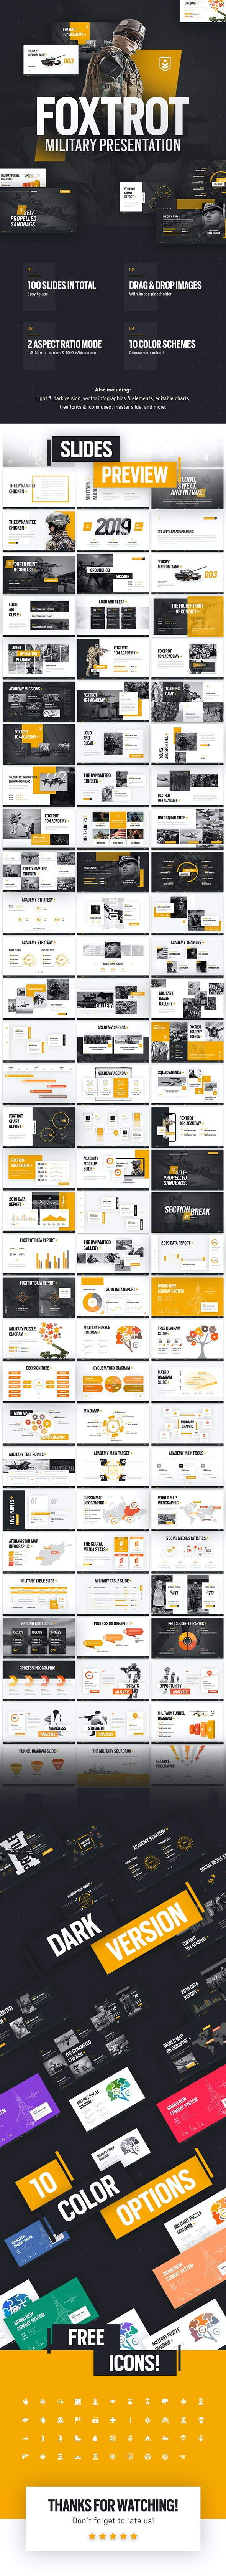 Foxtrot Military PowerPoint Presentation Template - PowerPoint Templates Presentation Templates